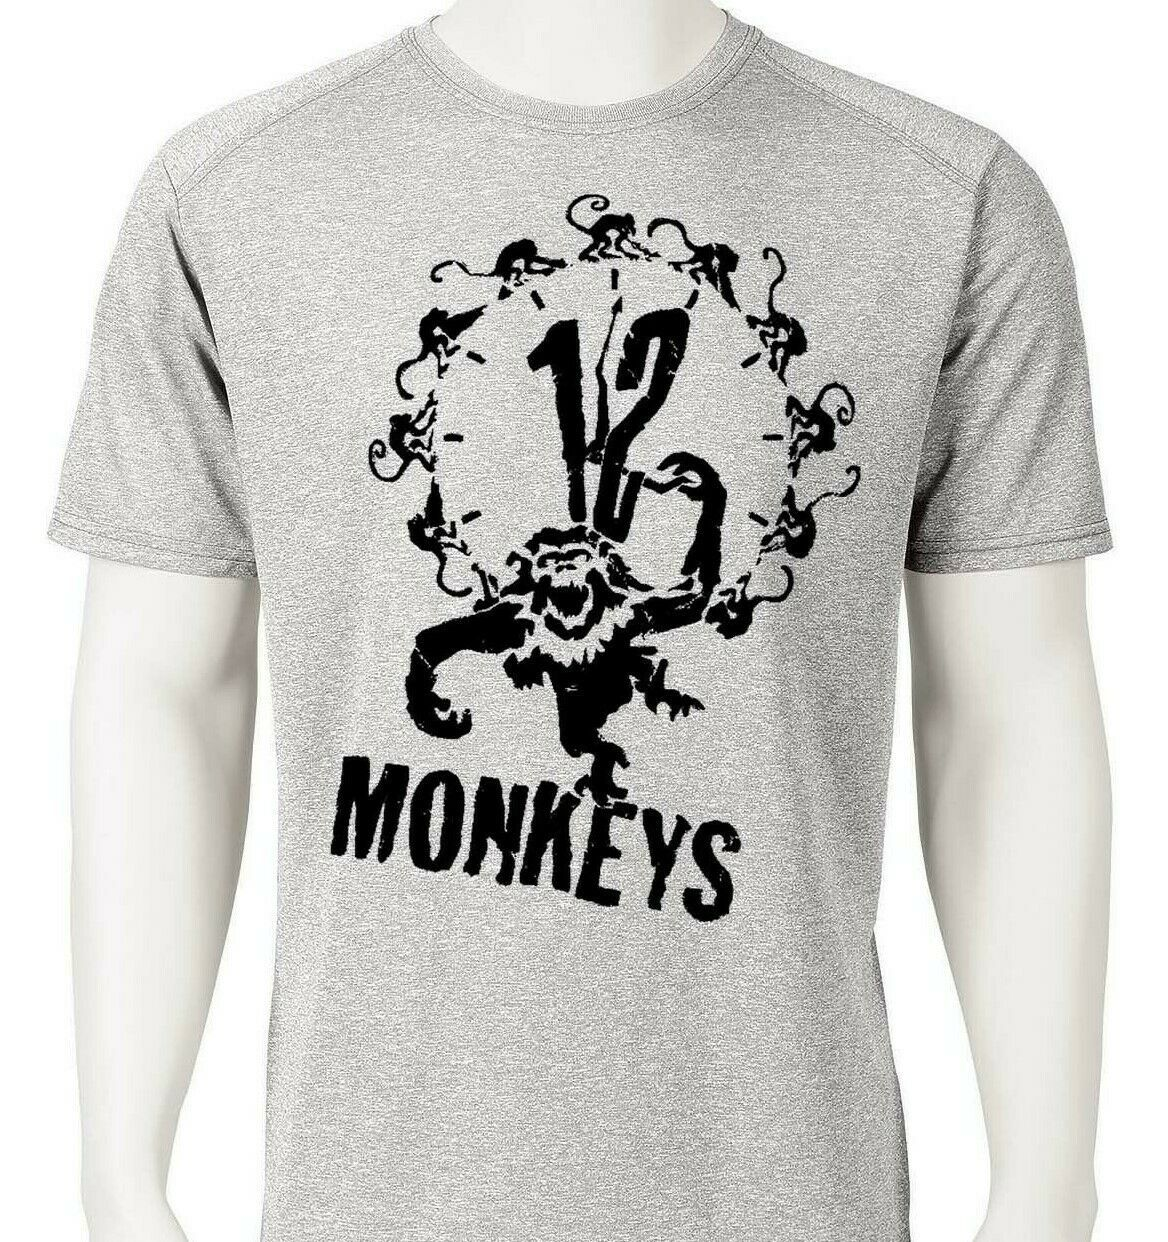 12 Monkeys Dri Fit graphic T-shirt retro 90s sci fi movie SPF active sun shirt